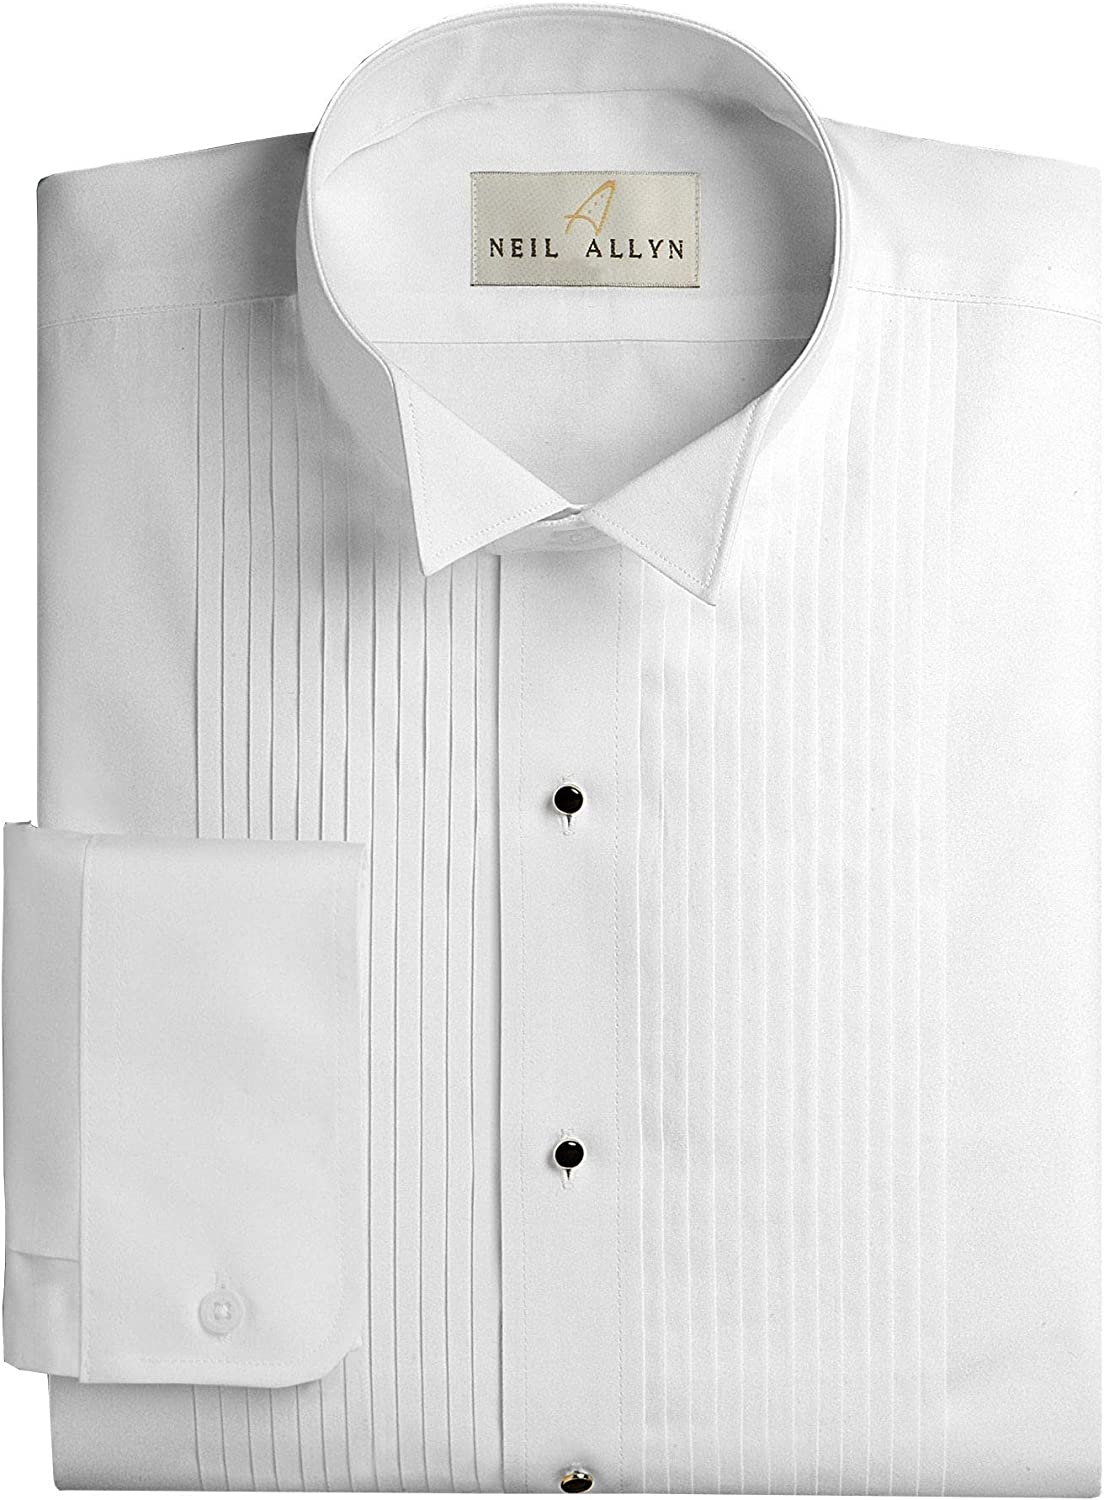 NEIL ALLYN Men's 2021 autumn and winter new Wing Collar At the price 1 Shirt-S-36-37 Pleats 4